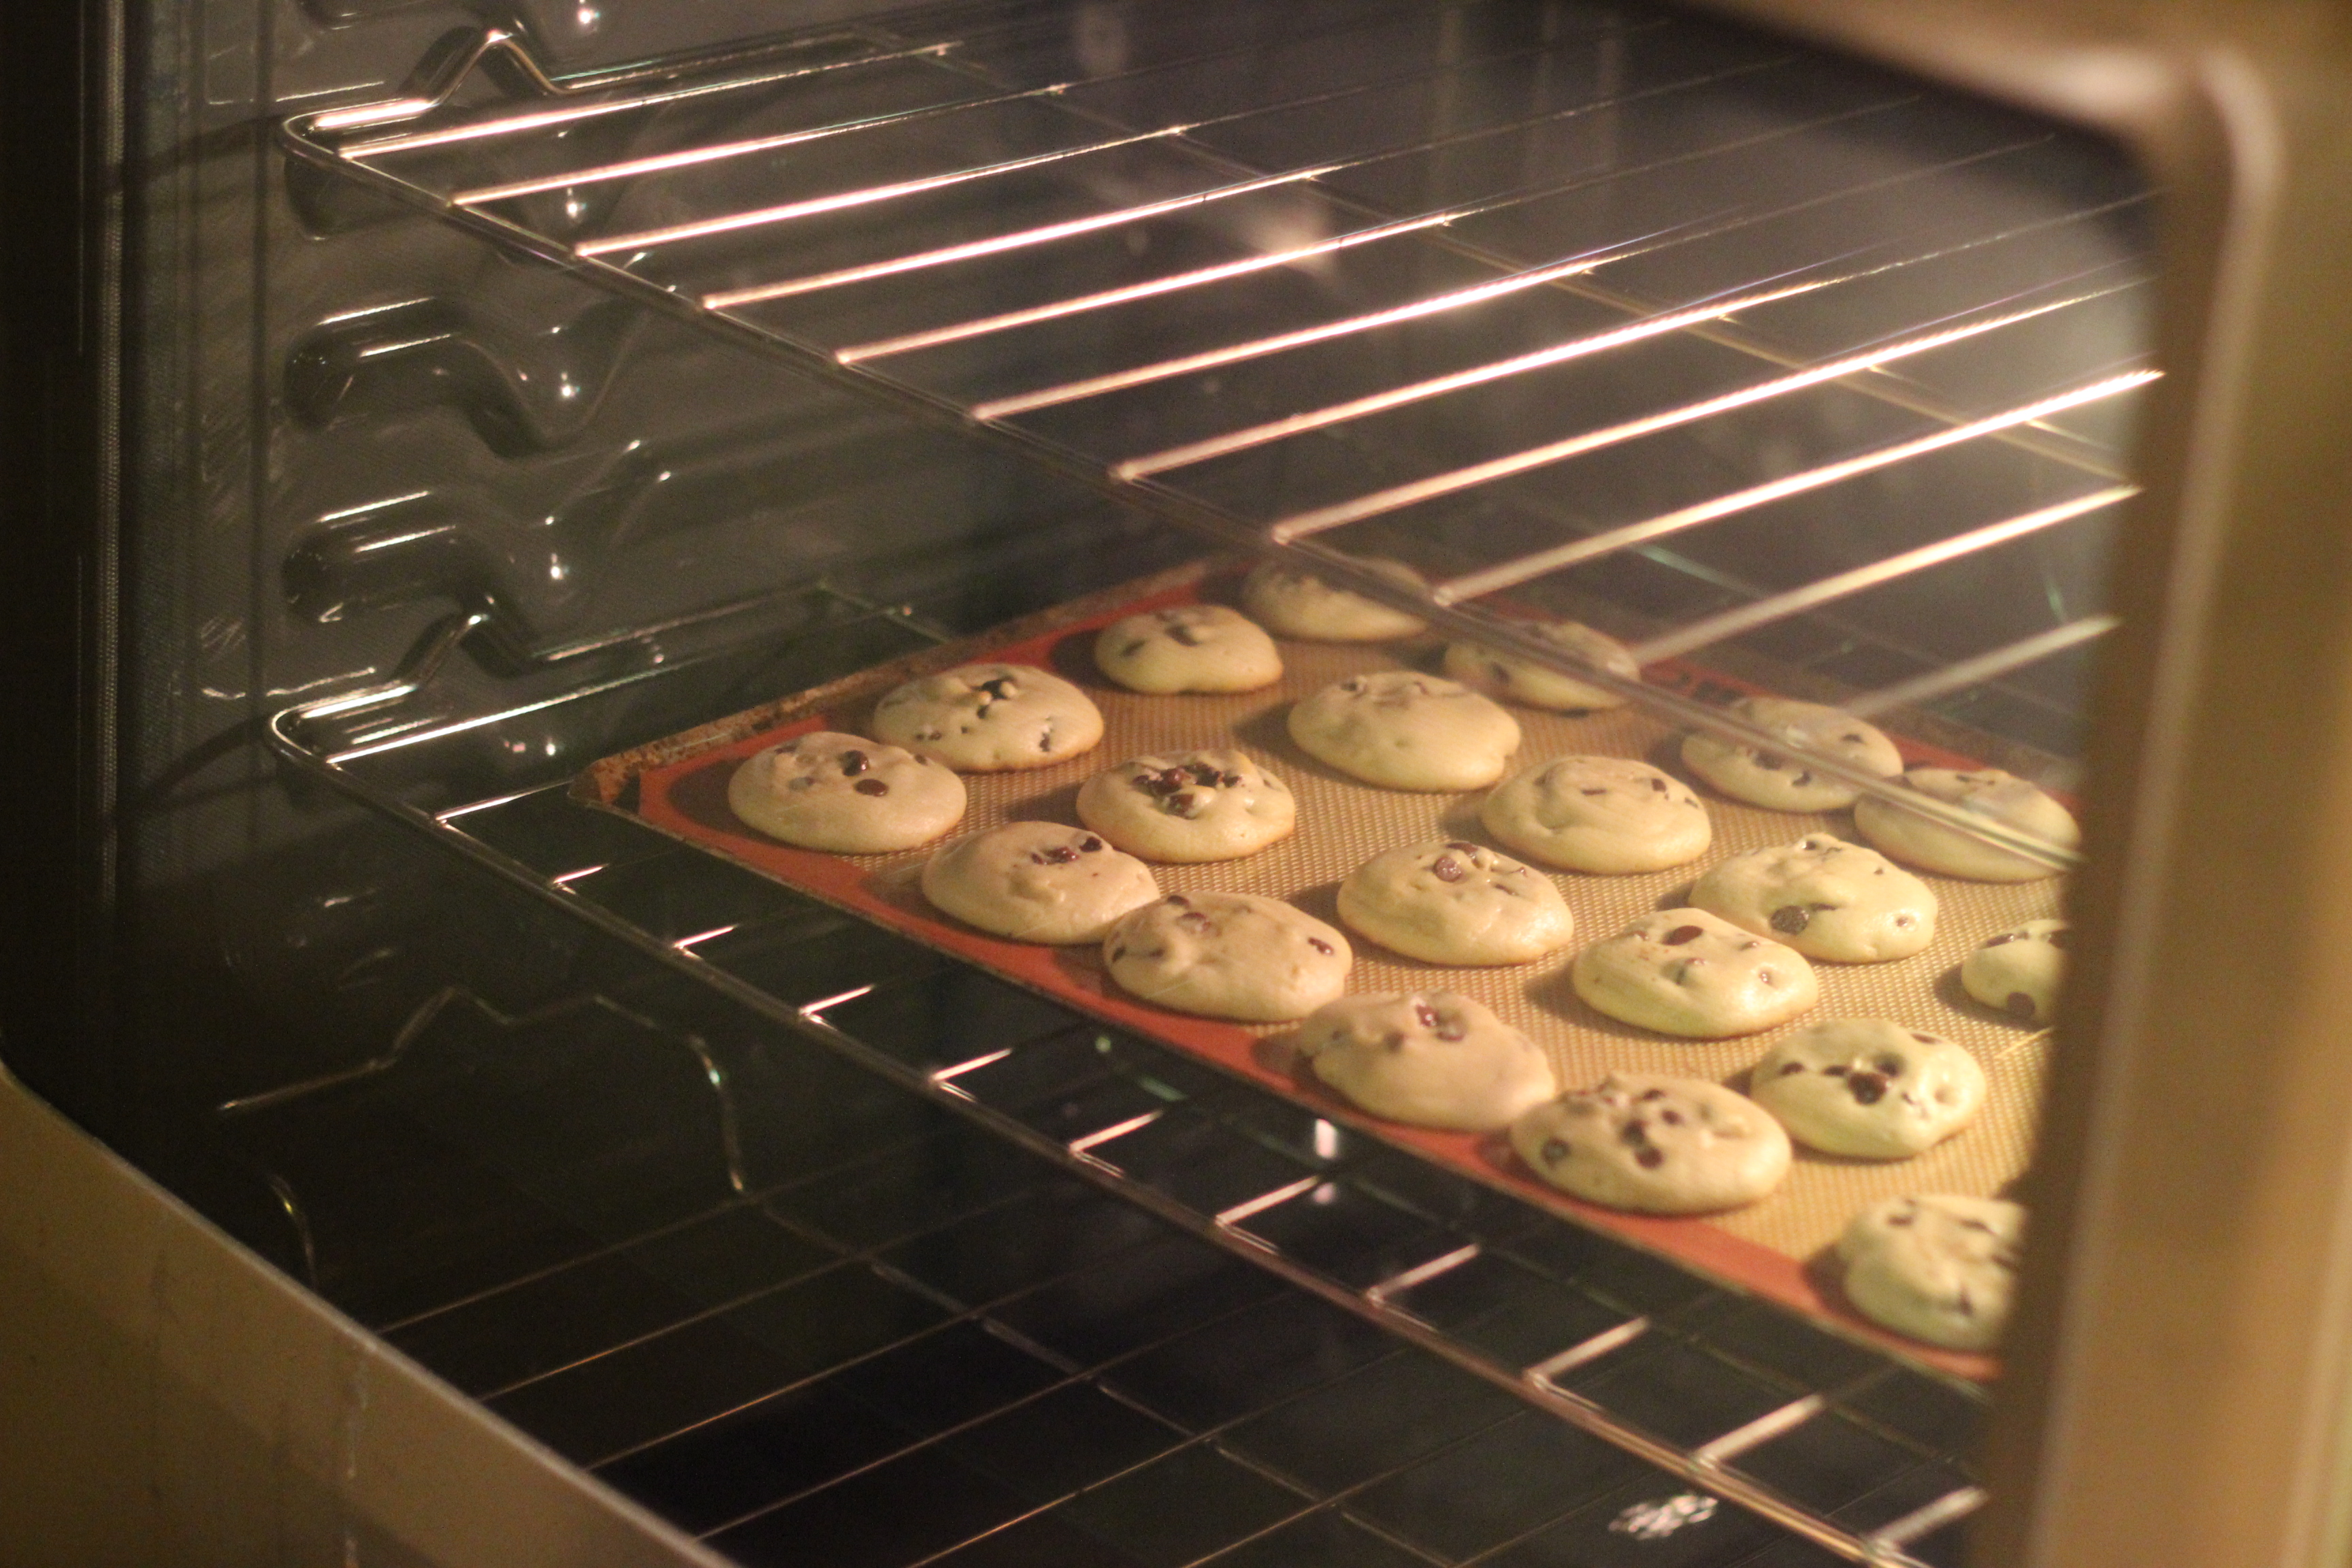 Cake In Oven ~ Convenient cooking with maytag maytagmoms sweet t makes